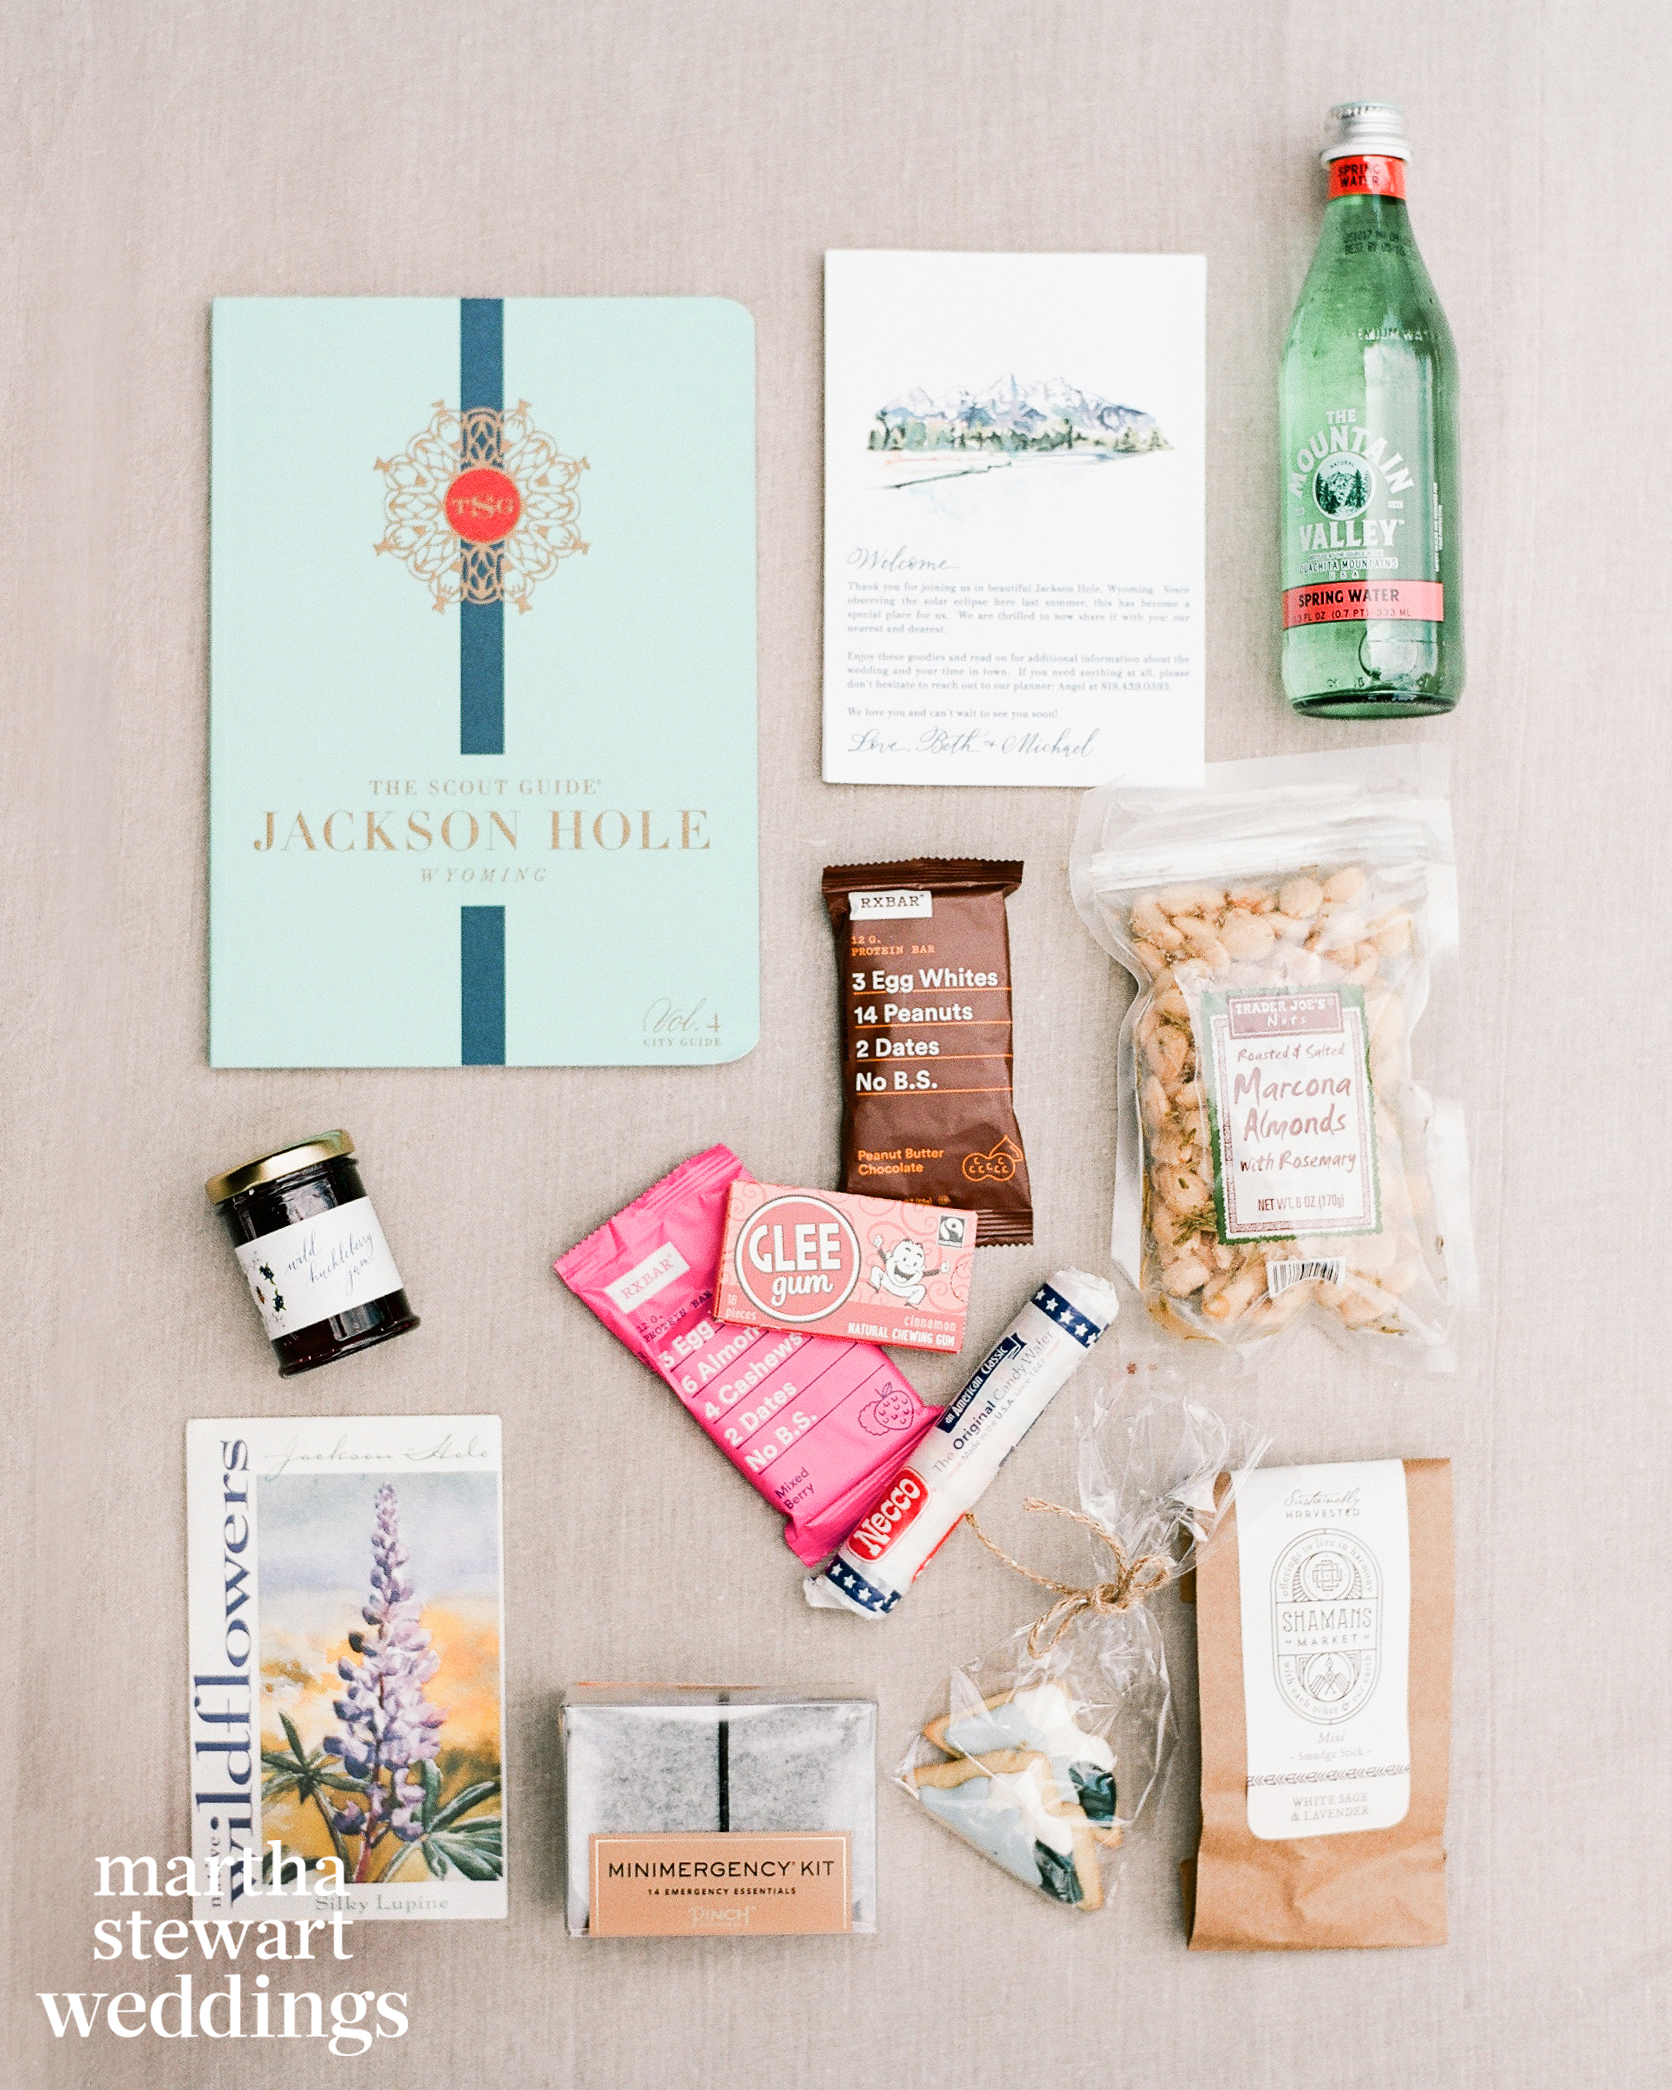 beth behrs michael gladis wedding welcome goodies sylvie gil